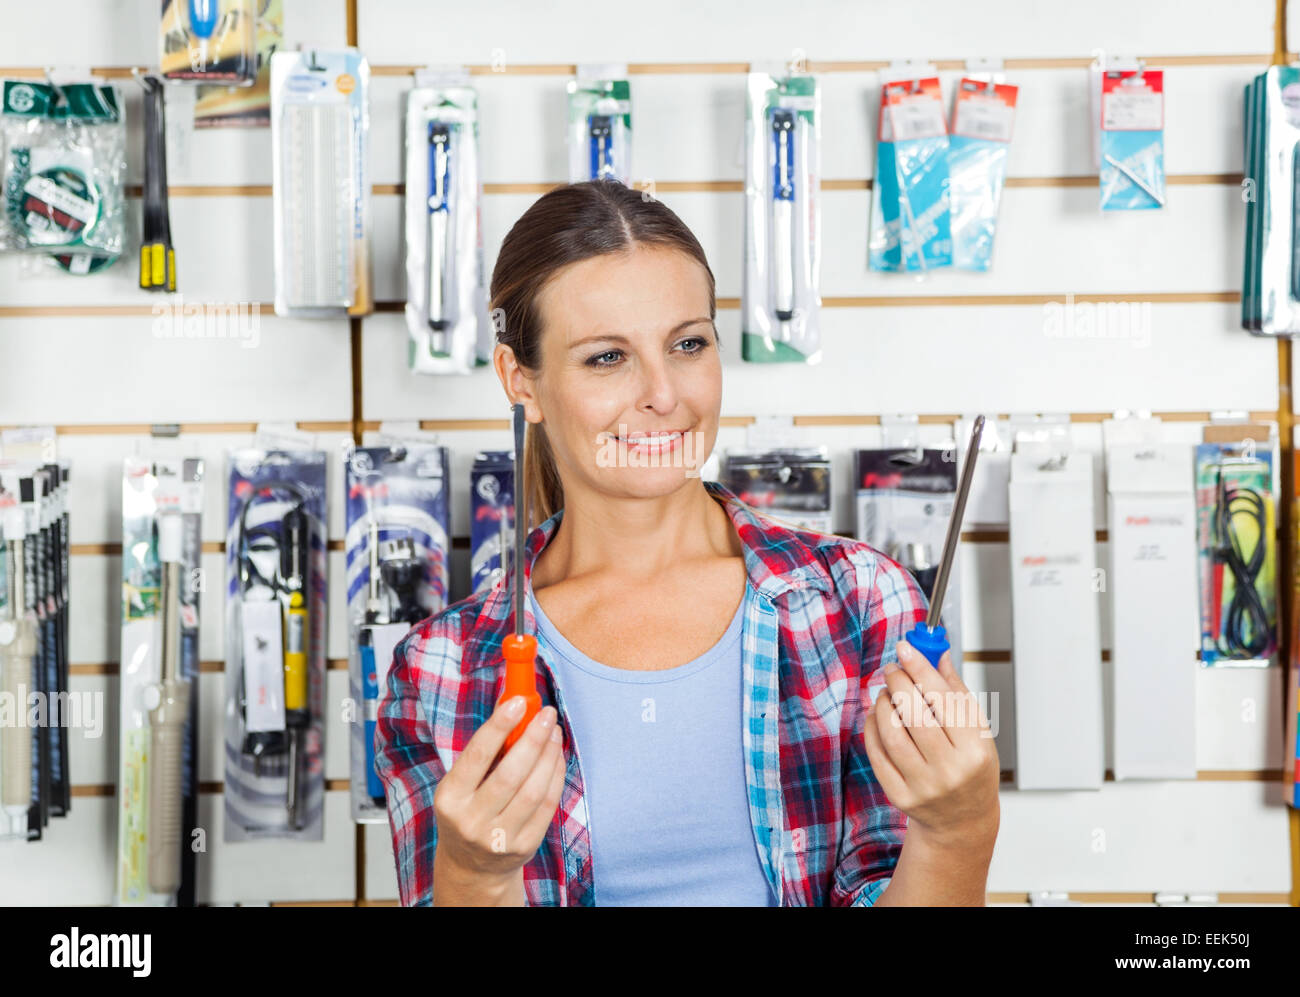 Customer Comparing Screwdrivers In Store - Stock Image